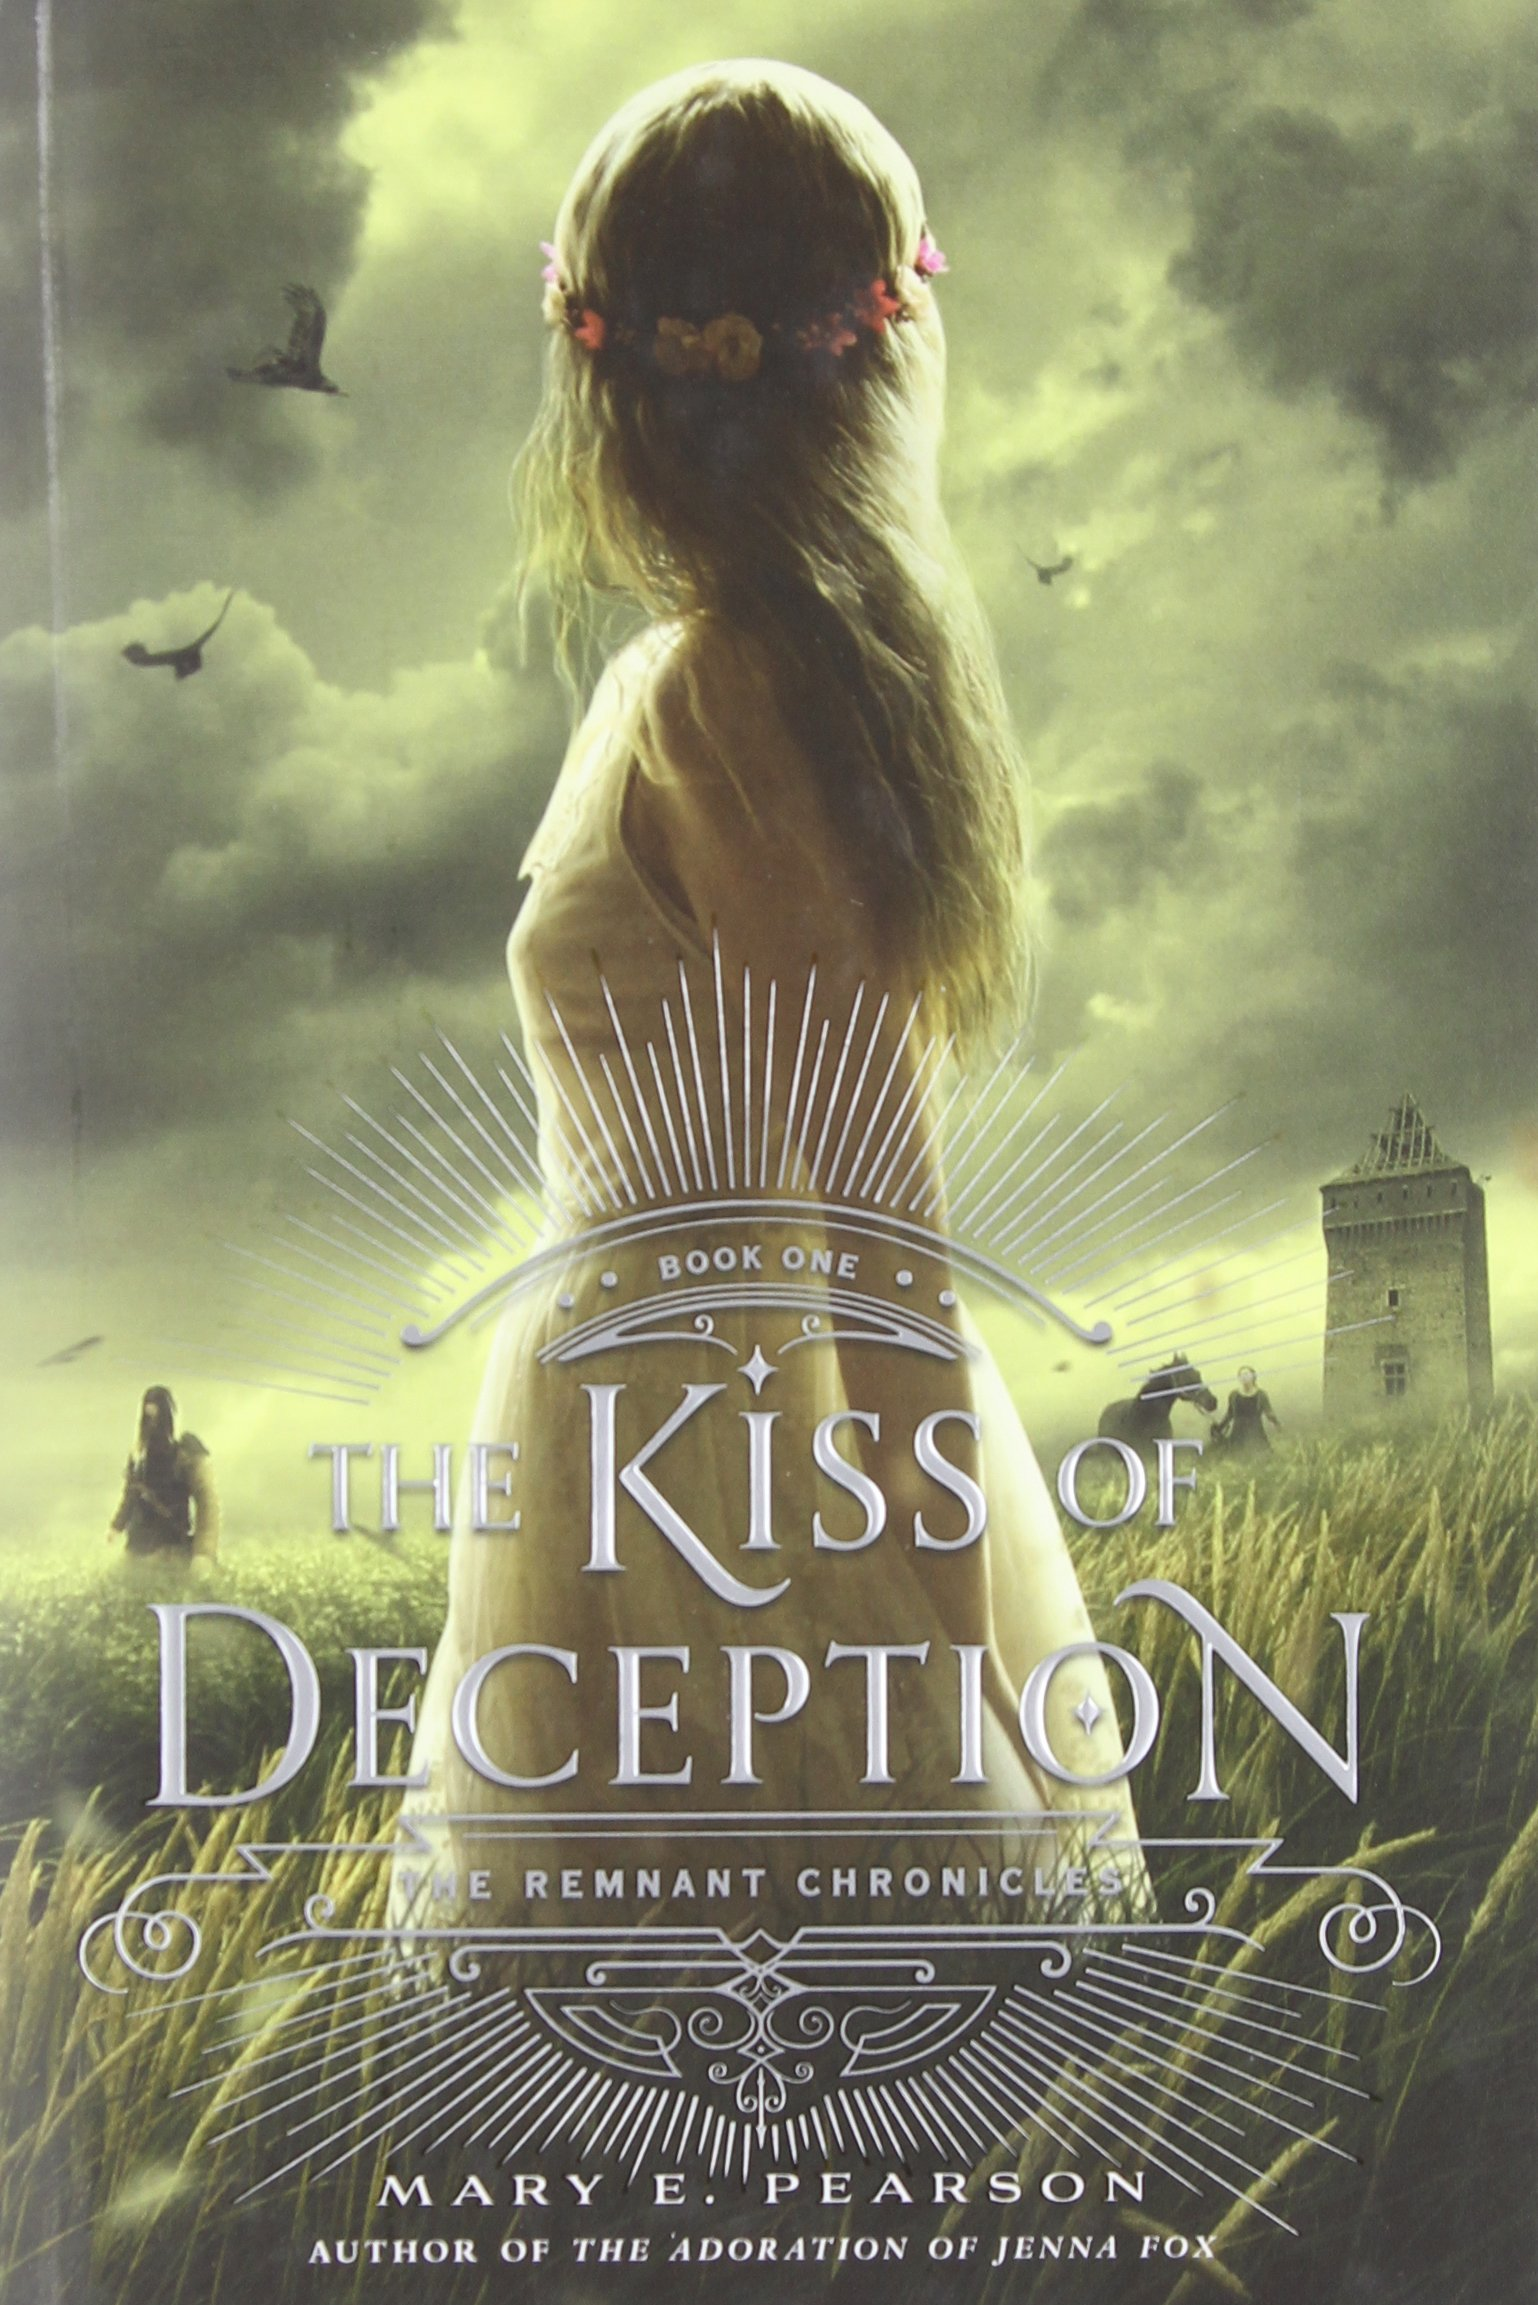 The Kiss of Deception: The Remnant Chronicles, Book One: 01: Amazon.co.uk:  Pearson, Mary E.: 9780805099232: Books